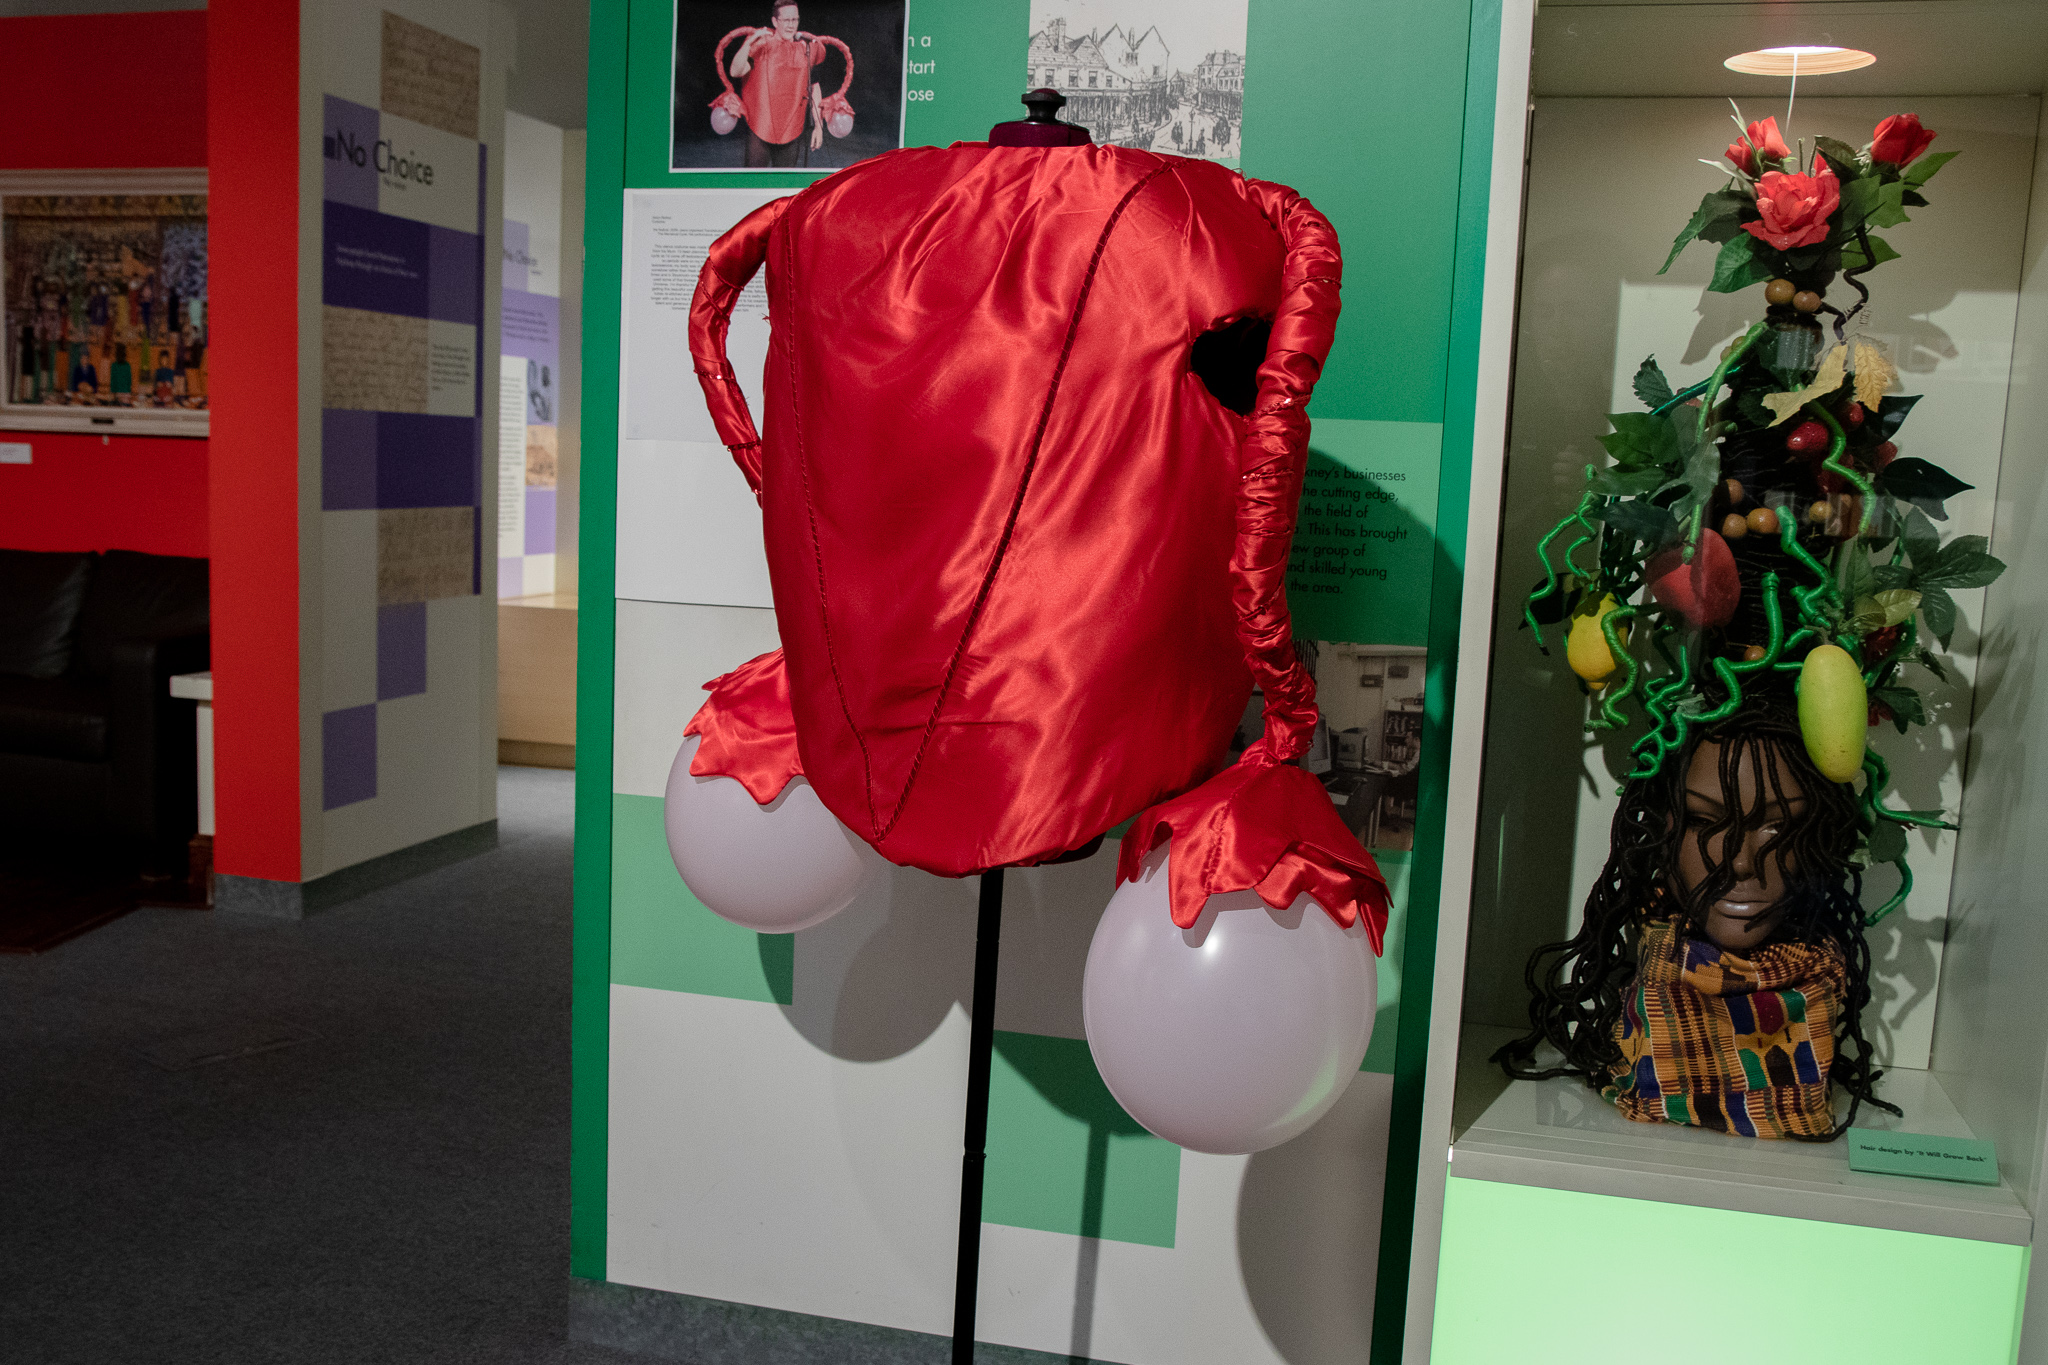 red silky Ovary costume